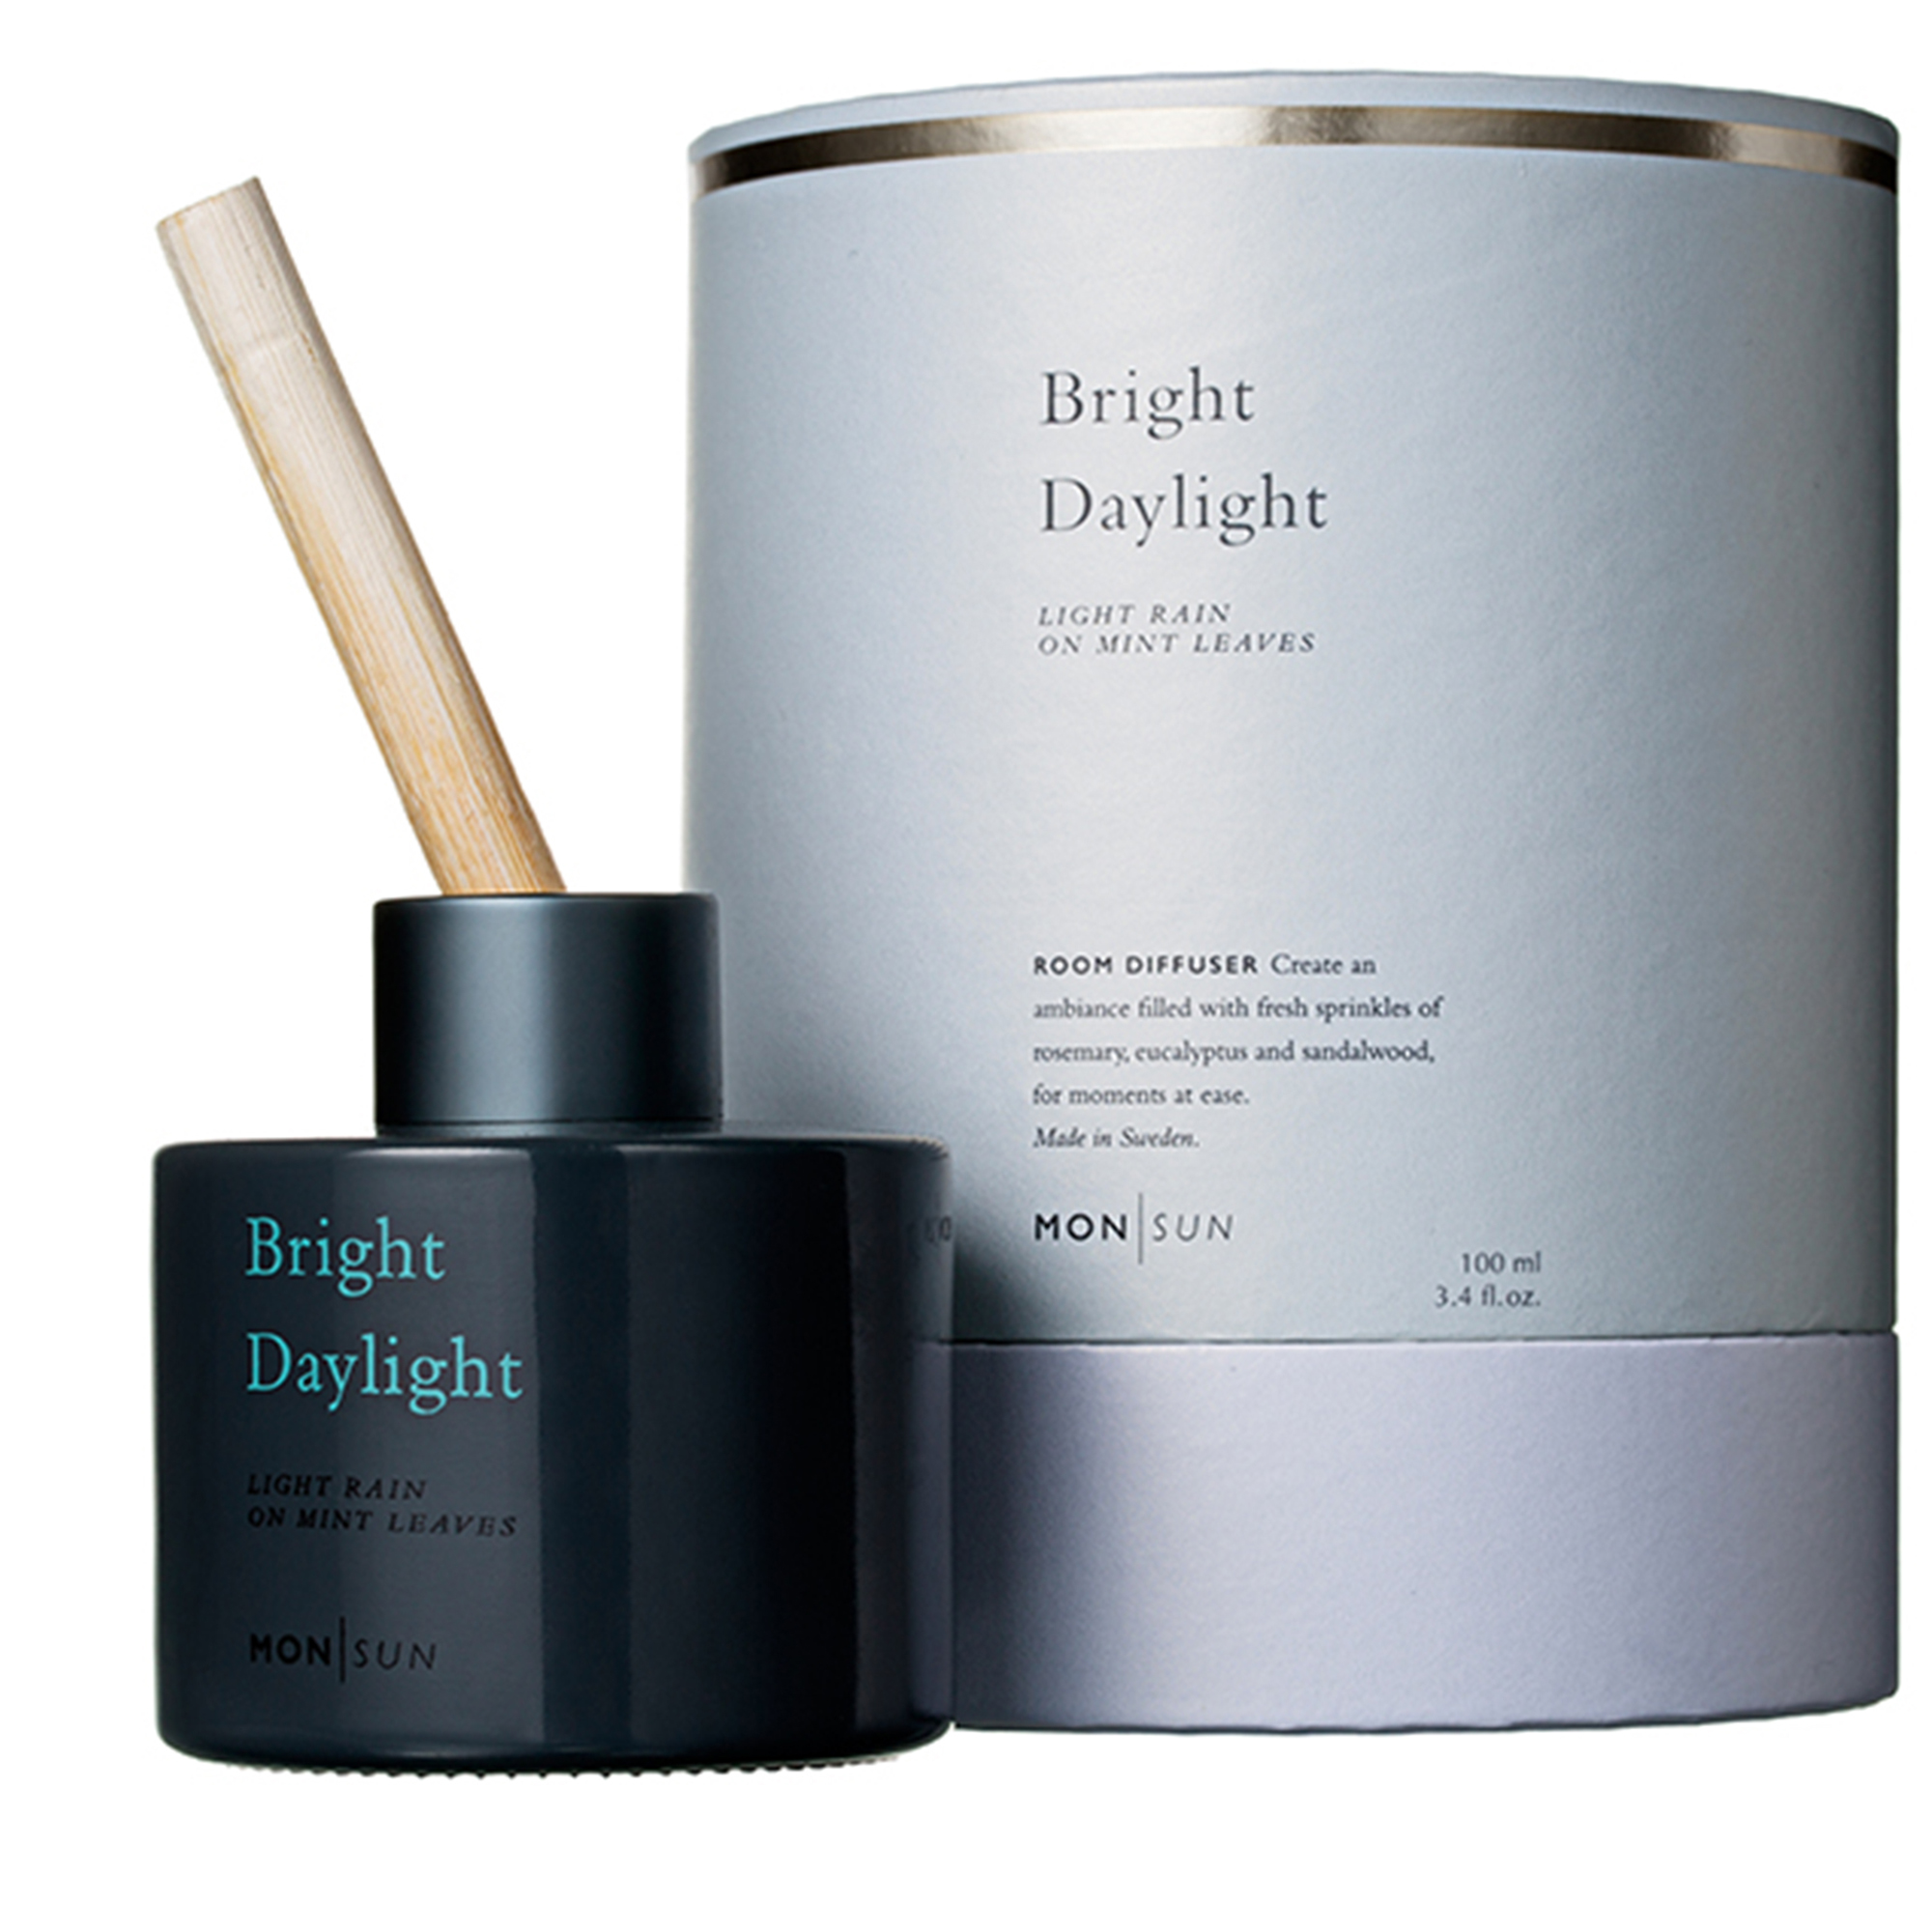 Bright daylight detox & Antioxidant Room Diffuser 100 ml